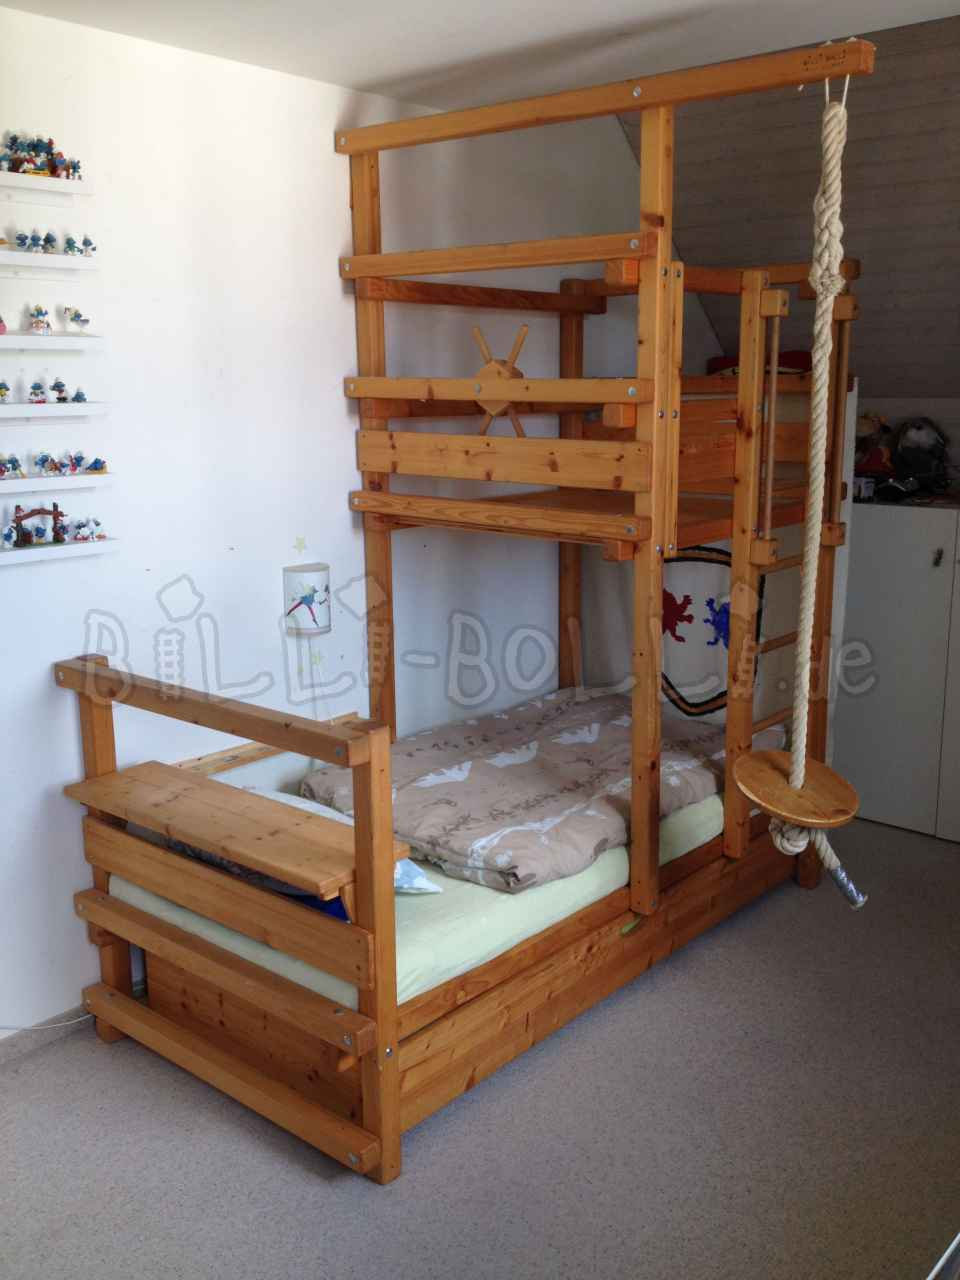 Roof slant bed with pull out bed 90 x 200 cm, spruce oil (second hand accessories)